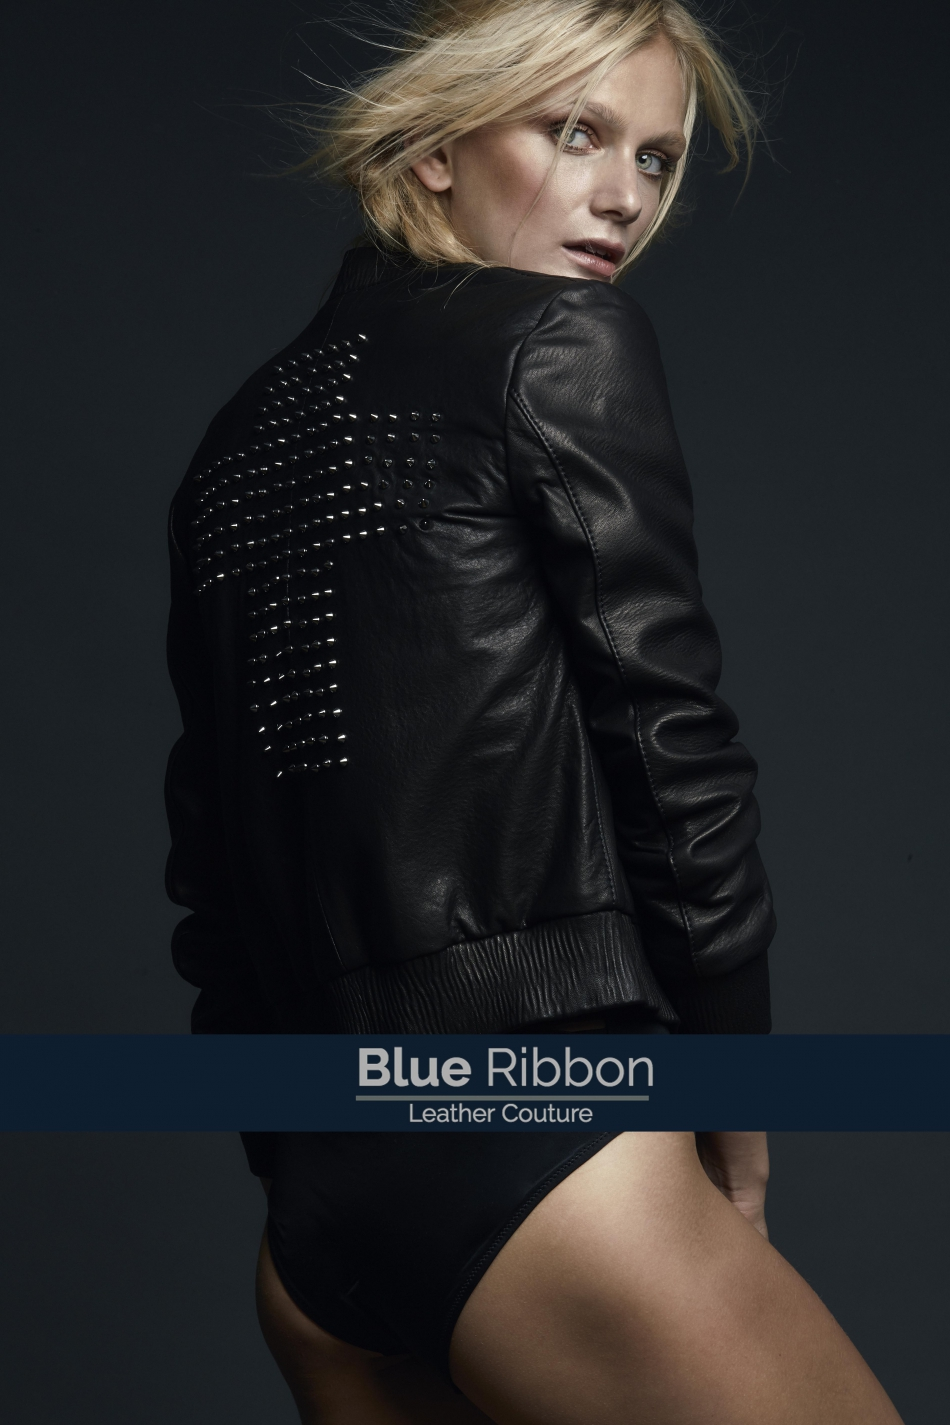 Valero Rioja Photography Campaign Blue Ribbon